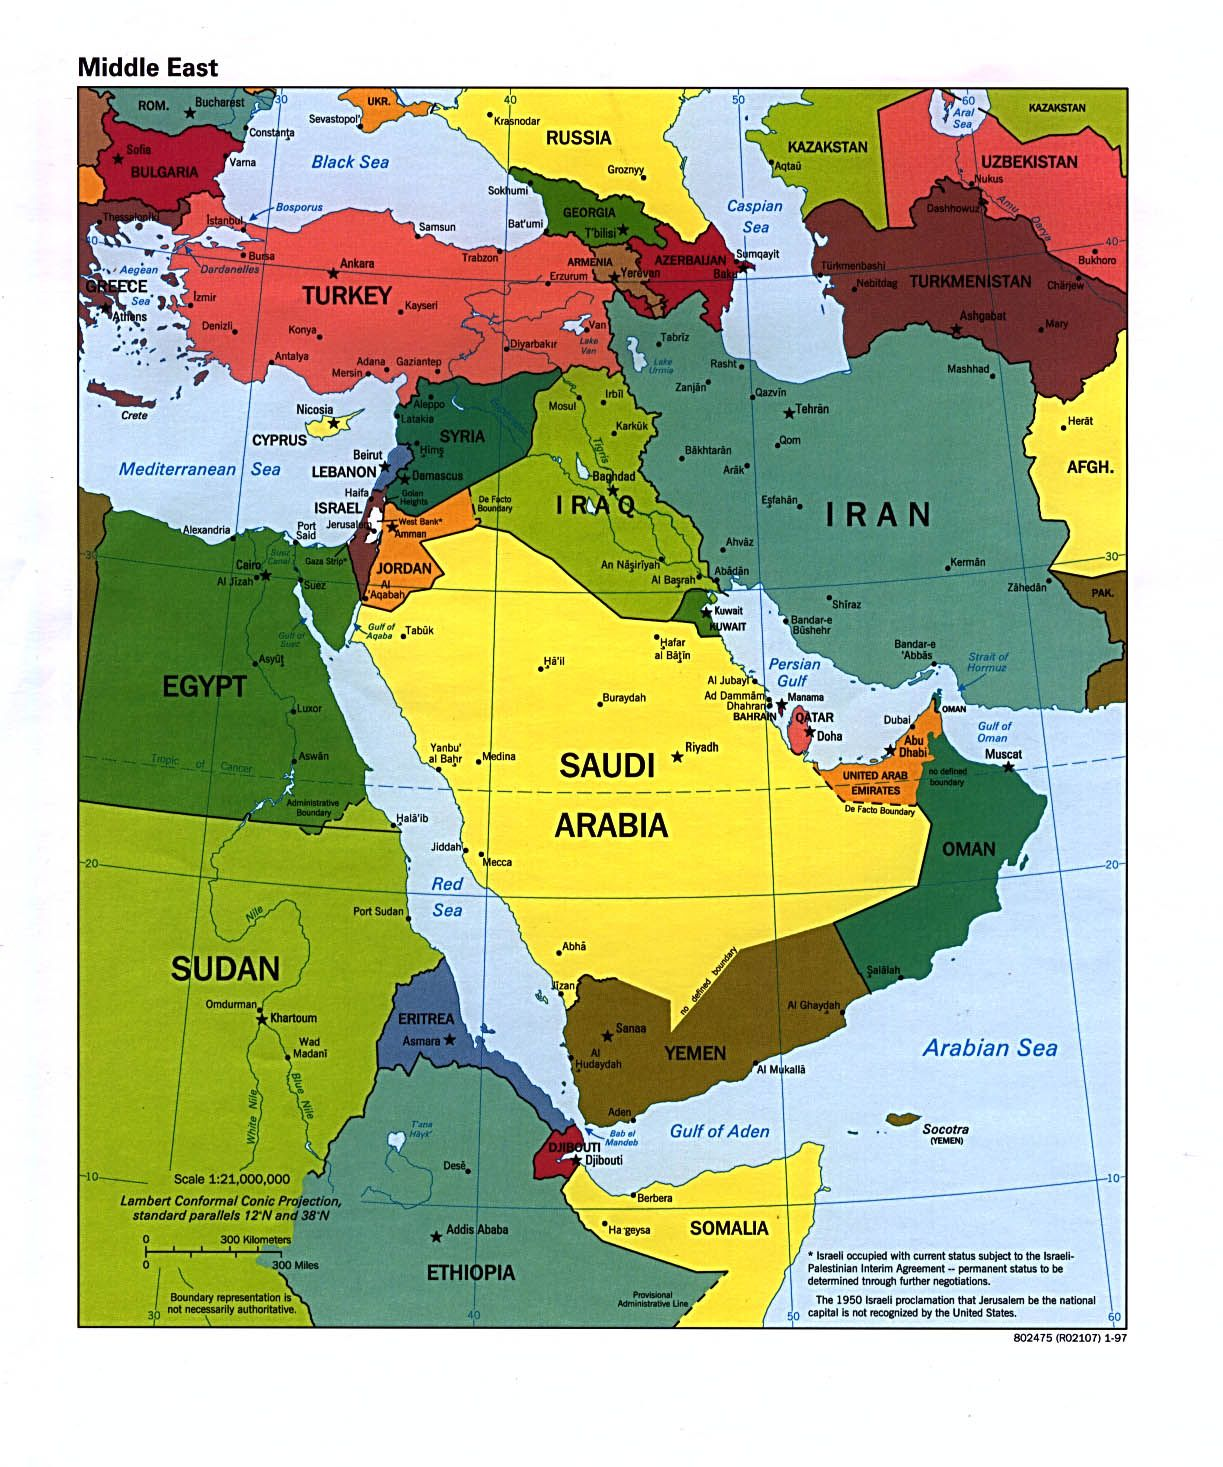 Middle East And Central Asia Was Where Russia Was Active